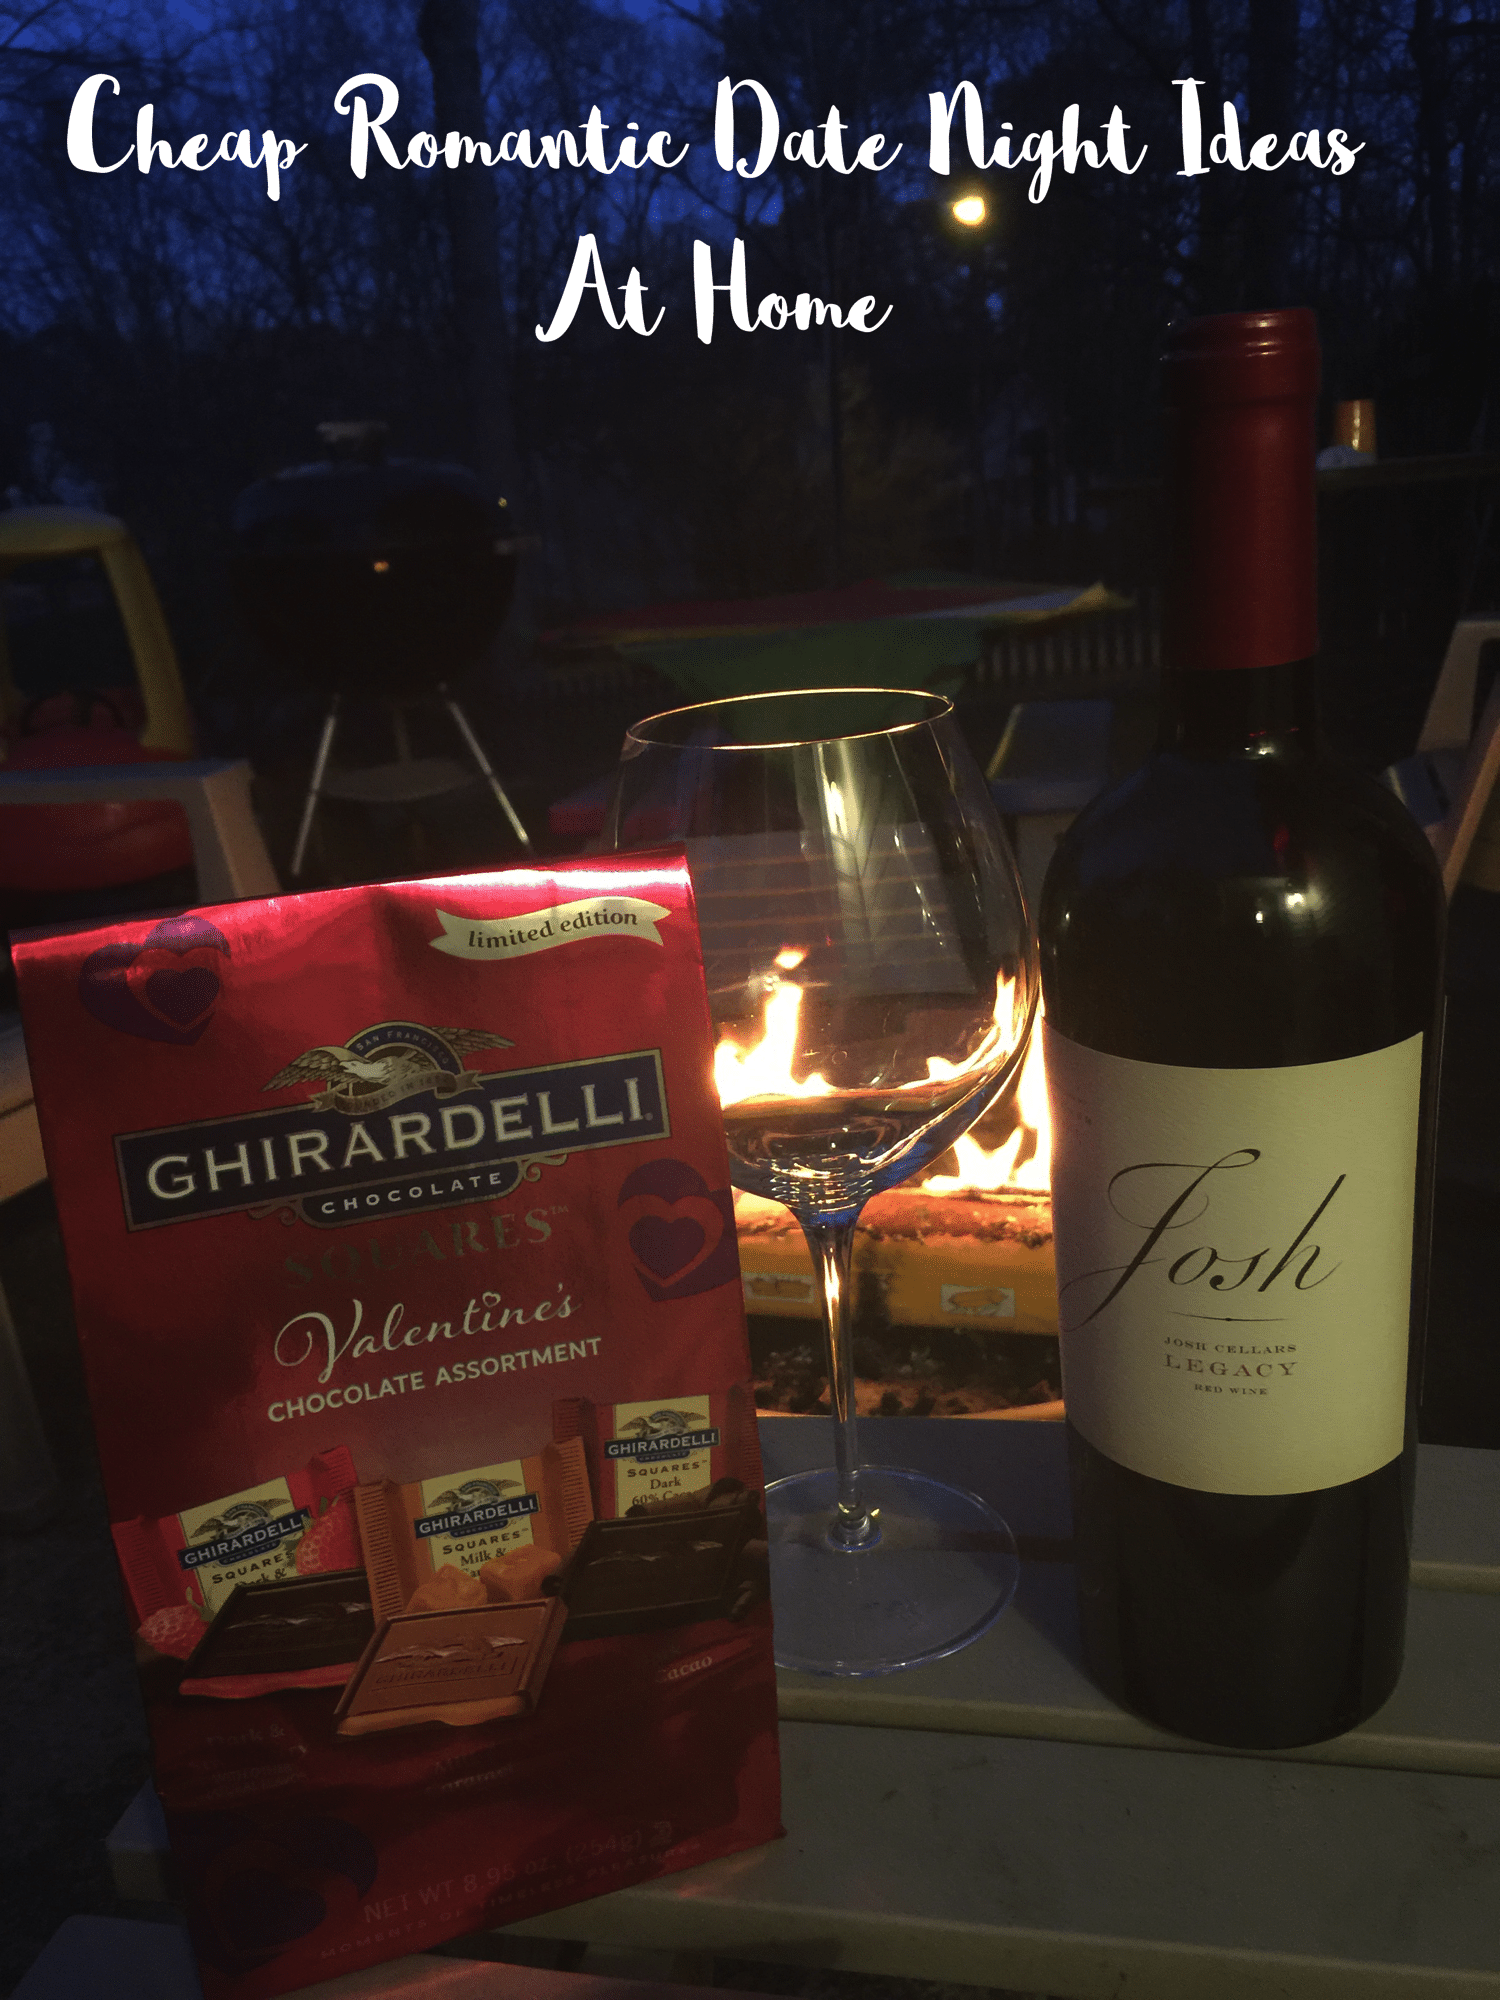 Cheap Romantic Date Night Ideas At Home